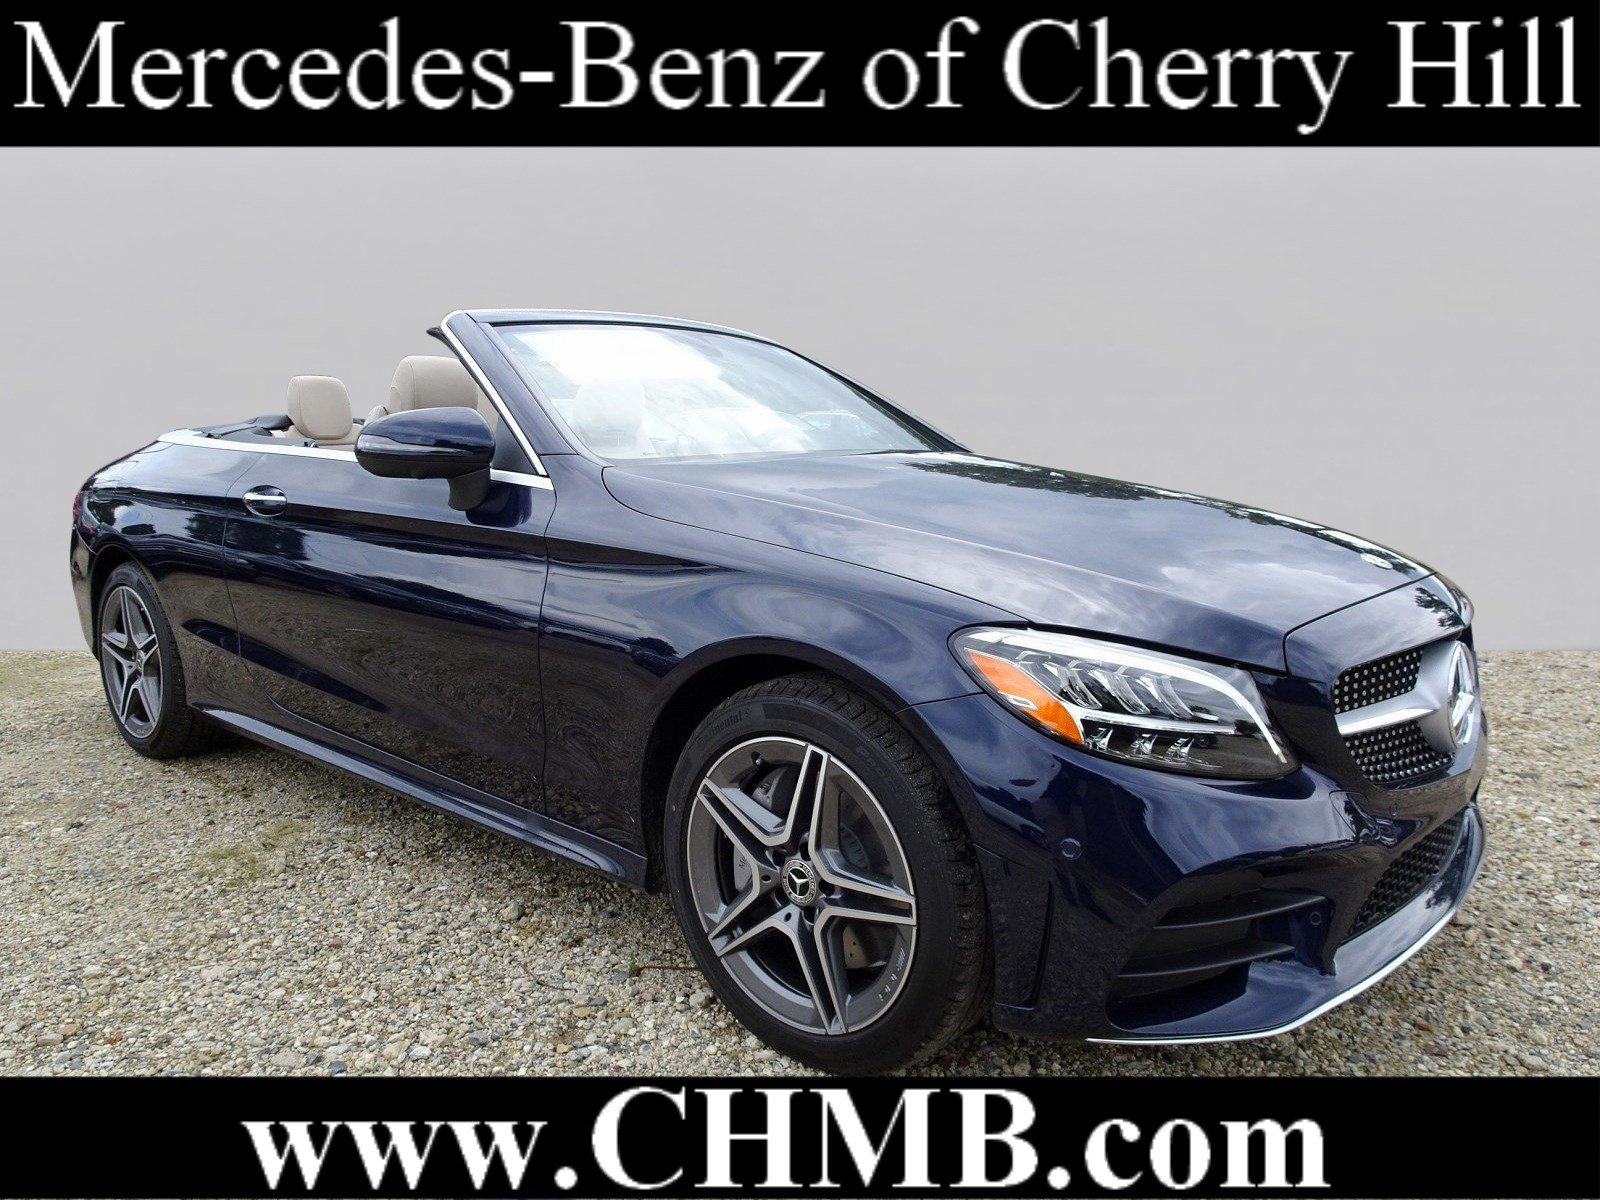 New 2019 Mercedes Benz C Class C 300 Sport CABRIOLET in Cherry Hill